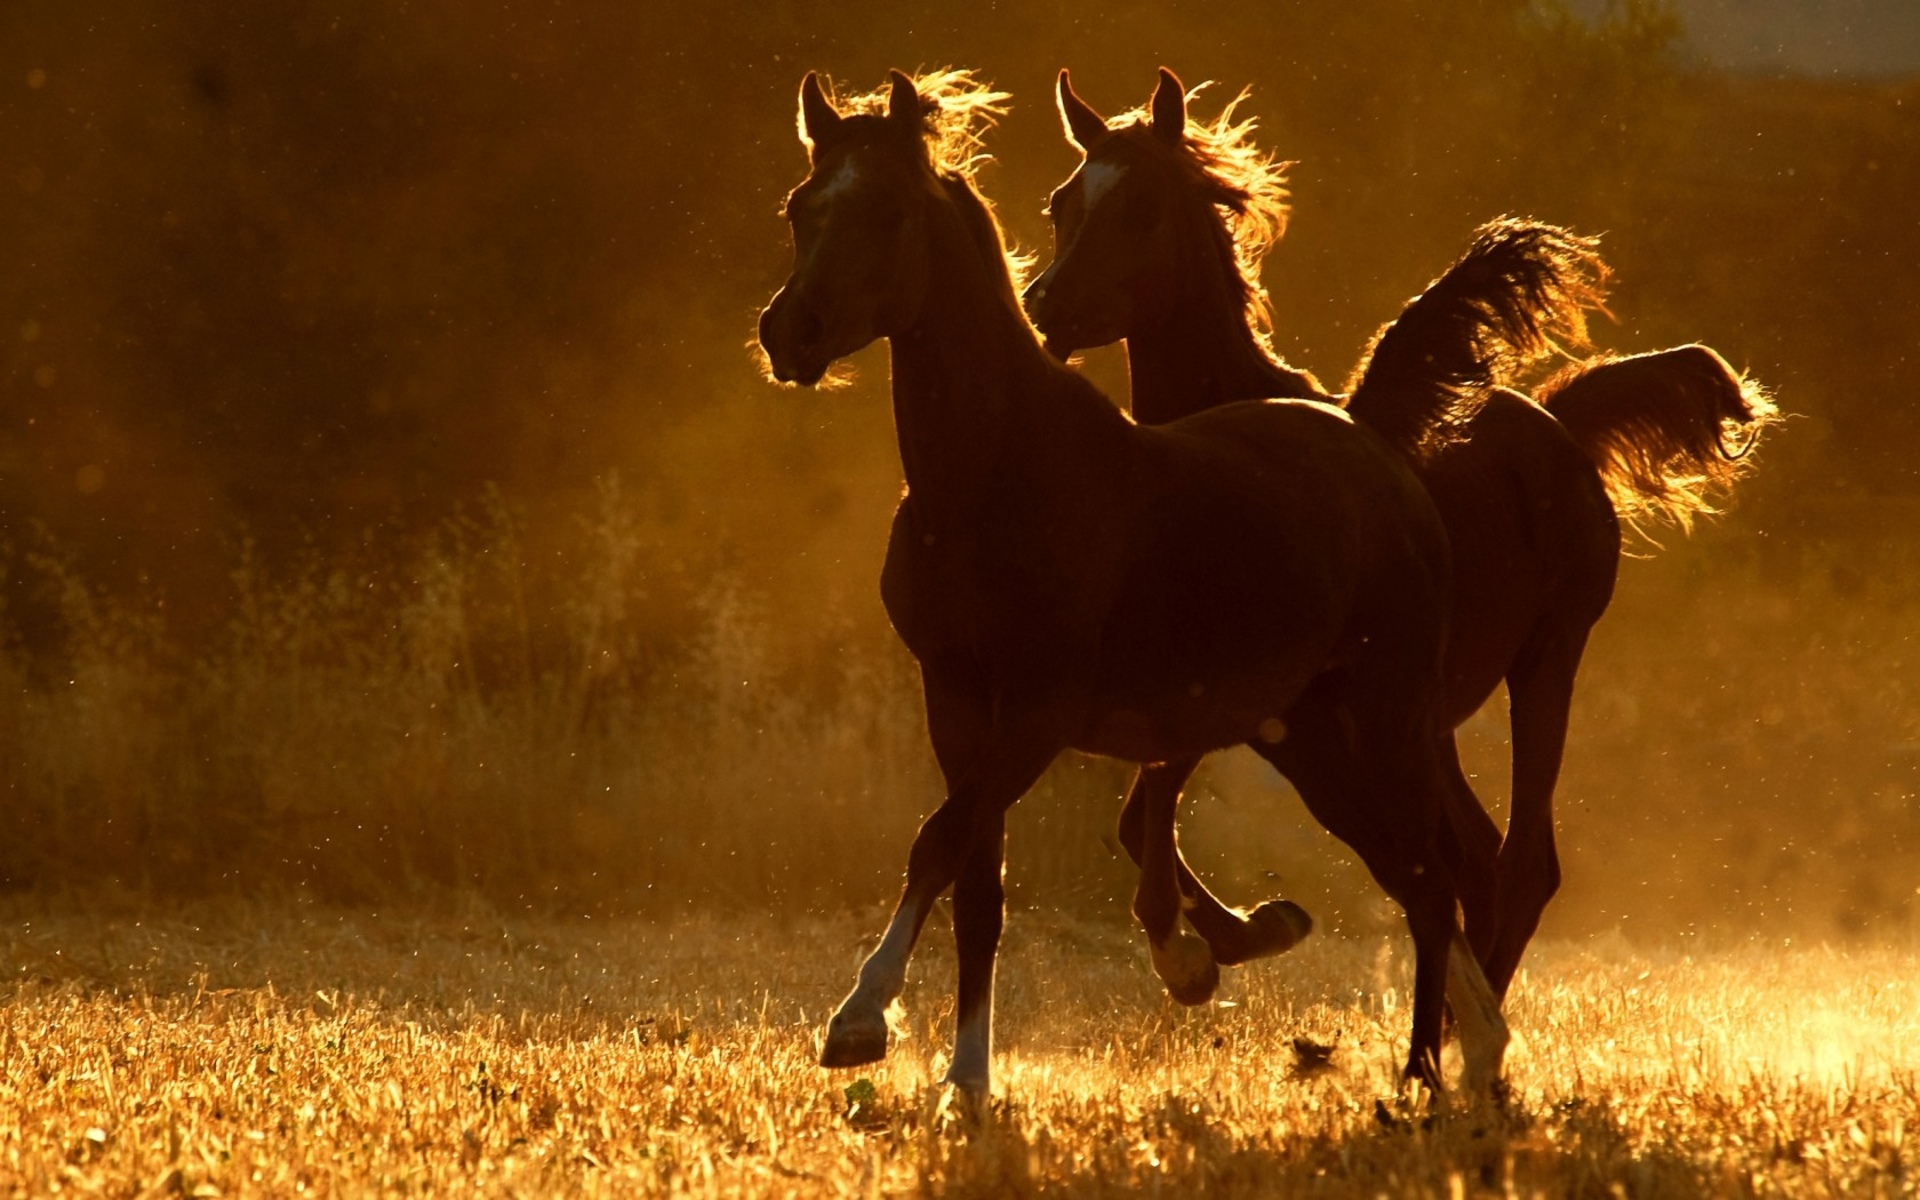 download wallpaper horses sunset - photo #16